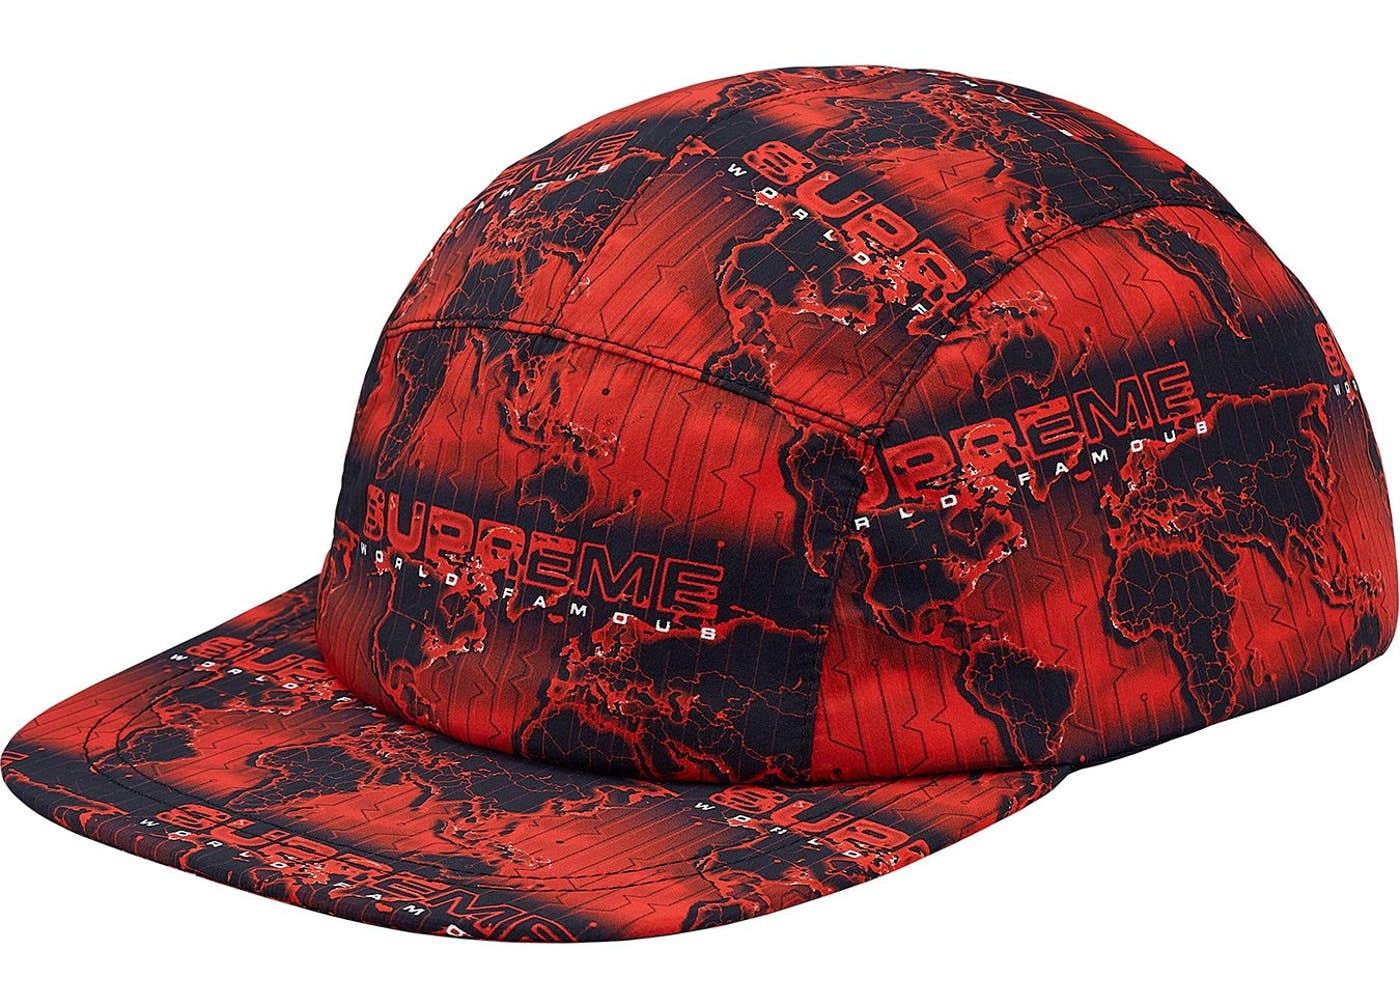 779b2645abe Supreme World Famous Taped Seam Camp Cap Red